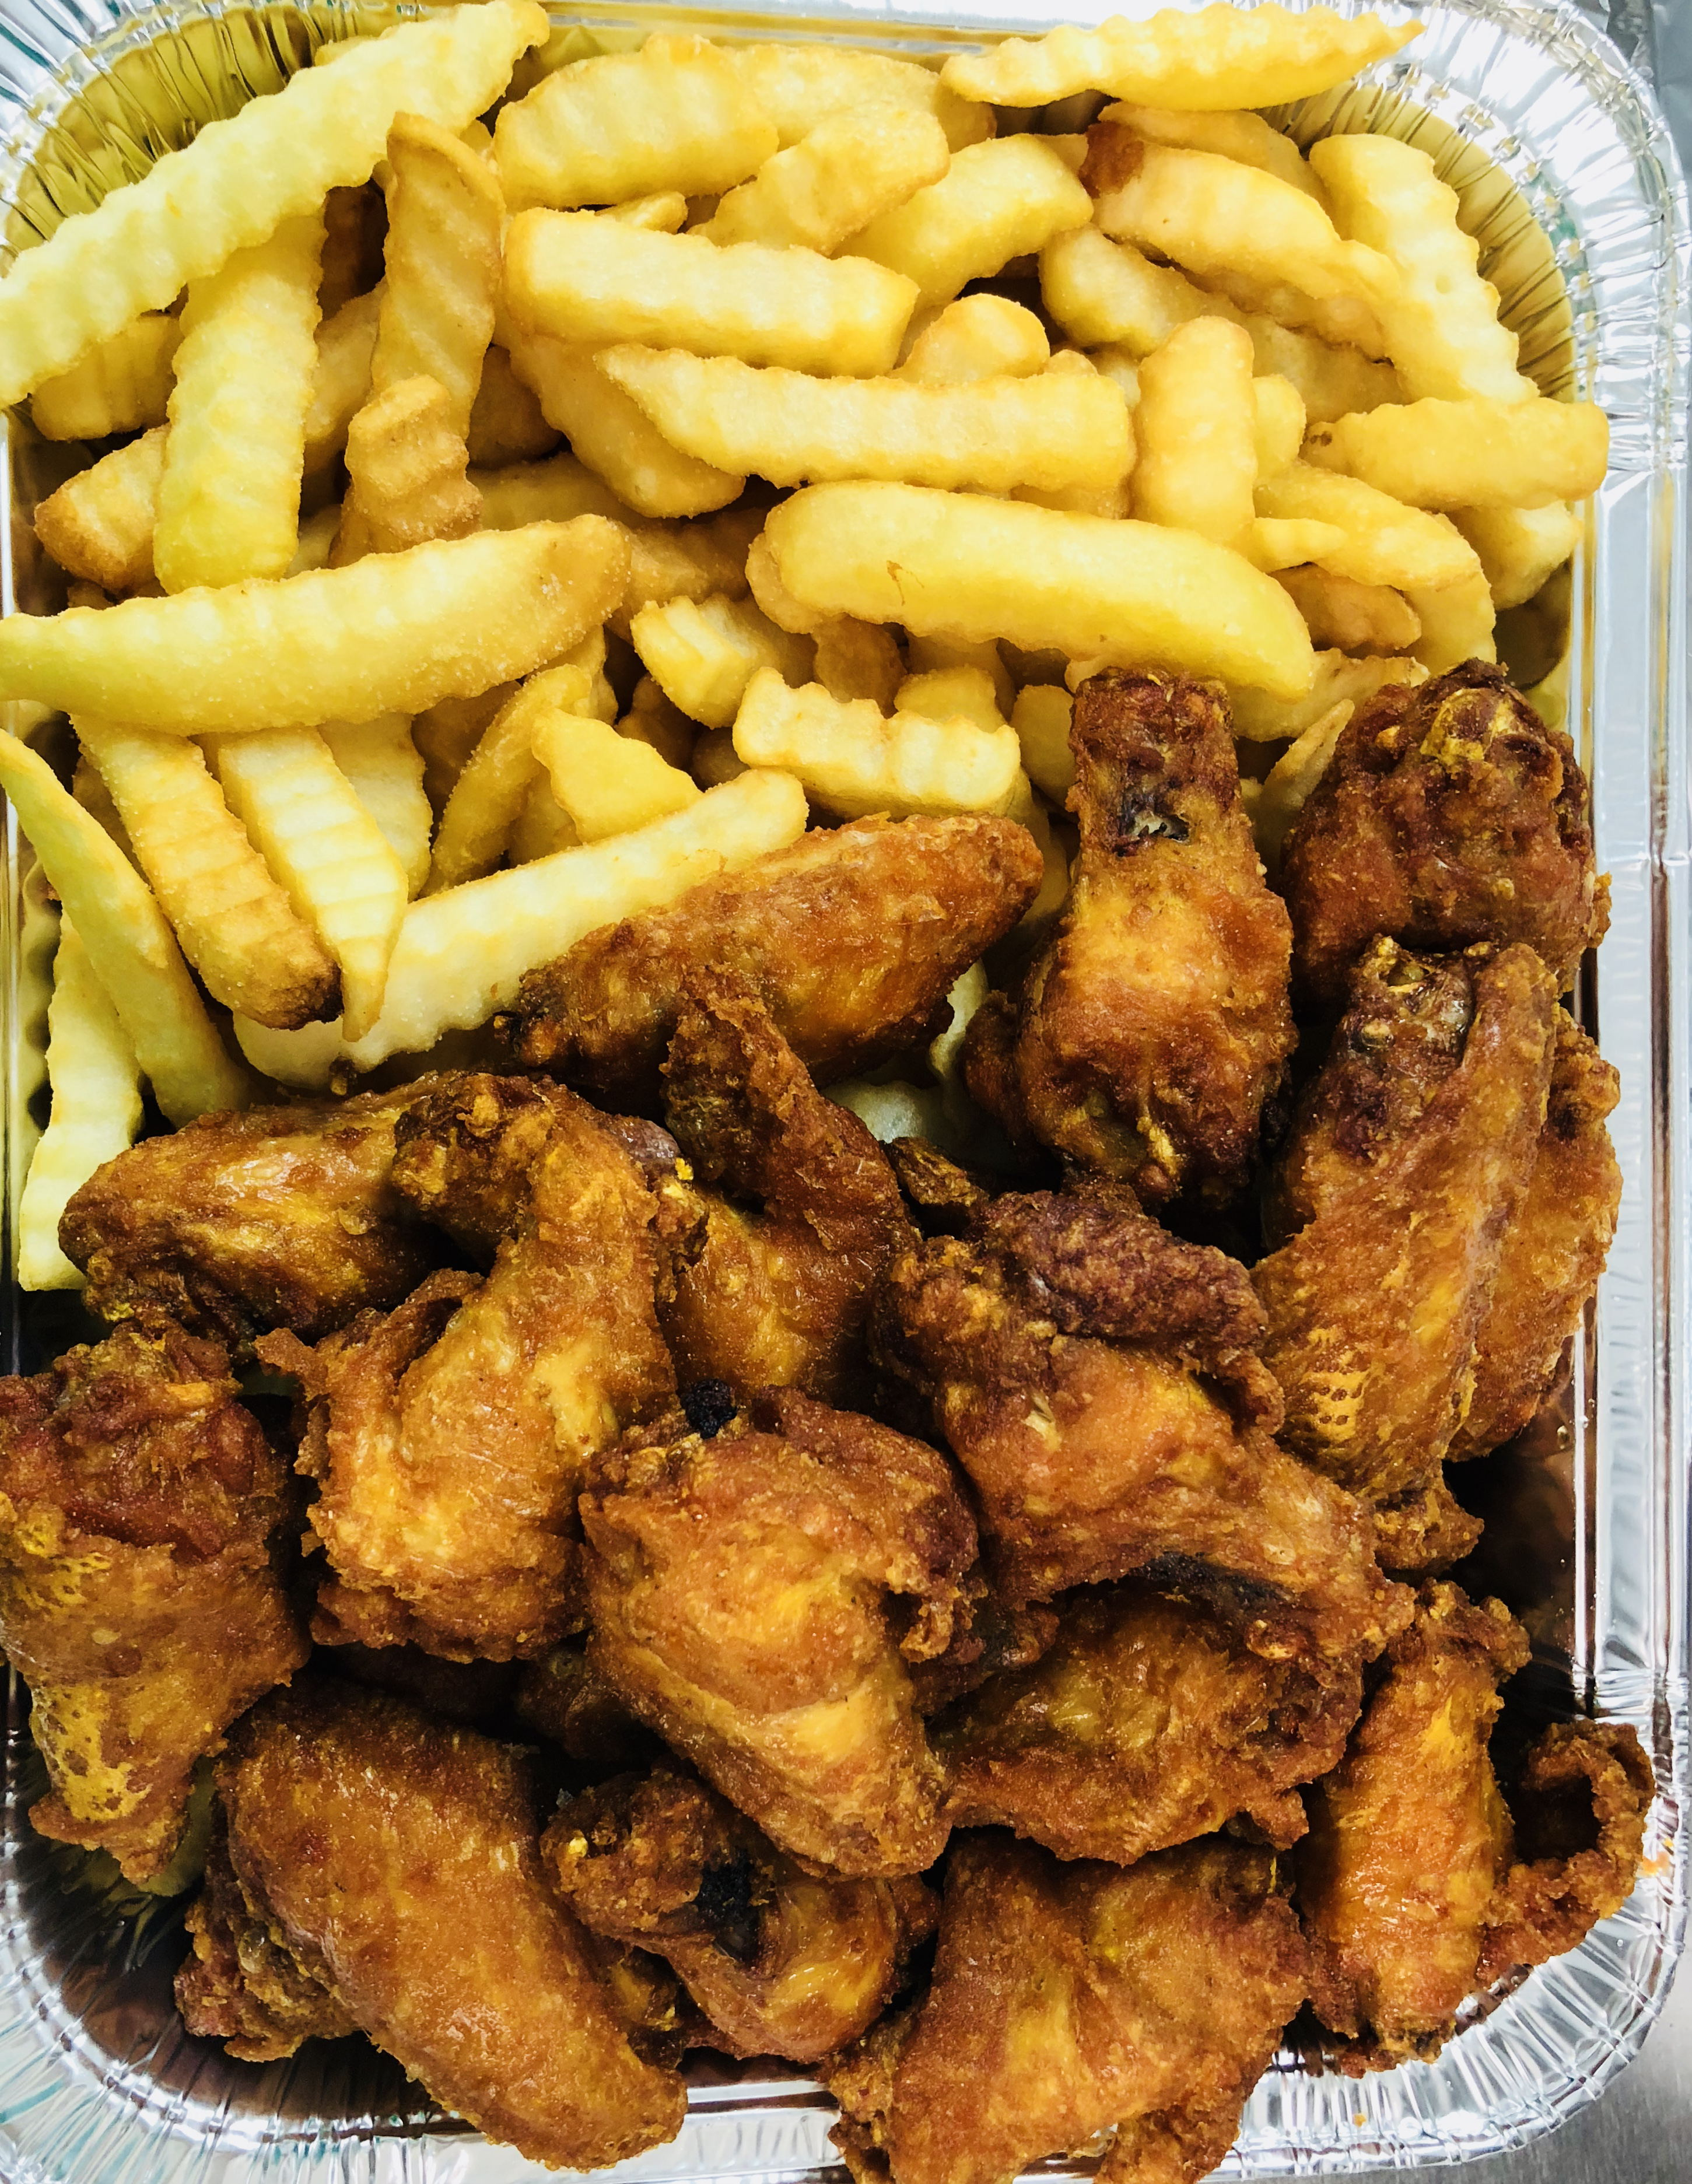 P9. 25 Wings with French Fries Image